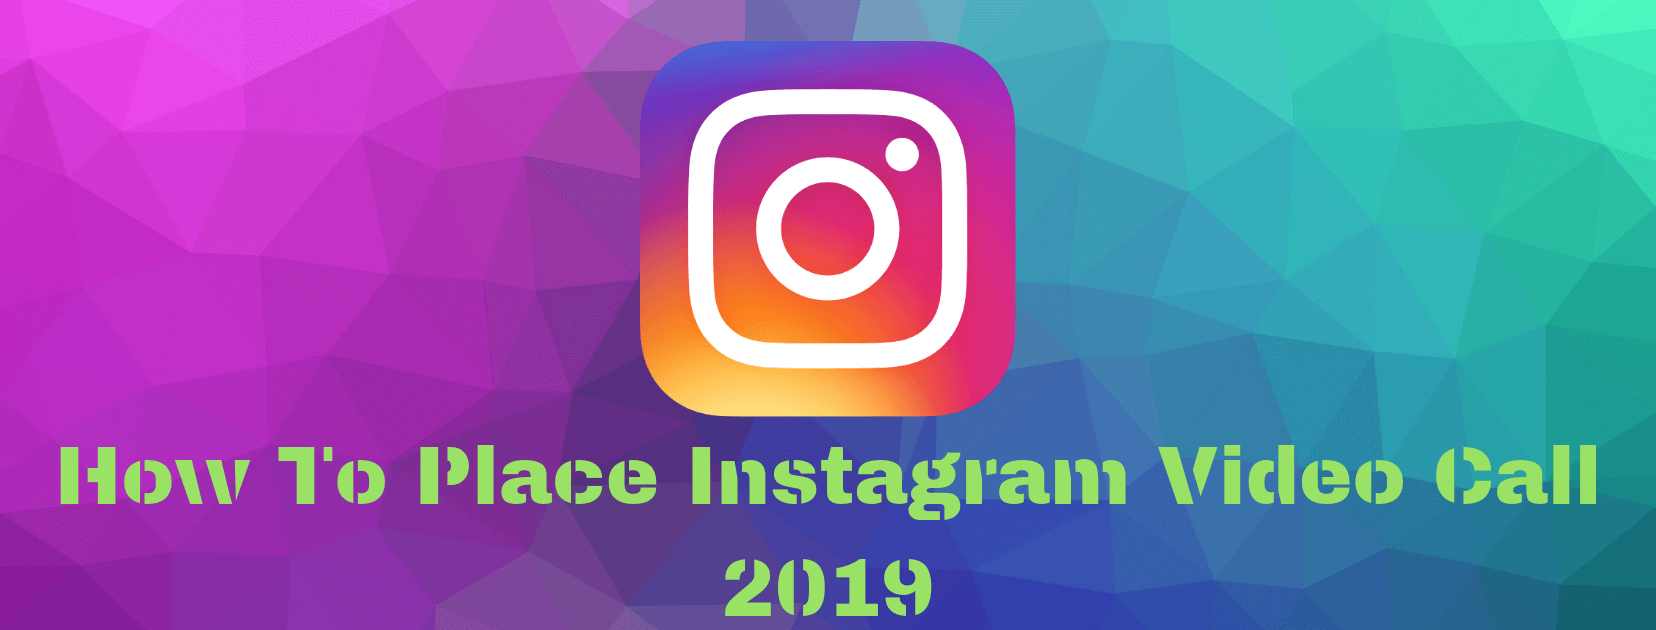 Video Call Instagram 2019